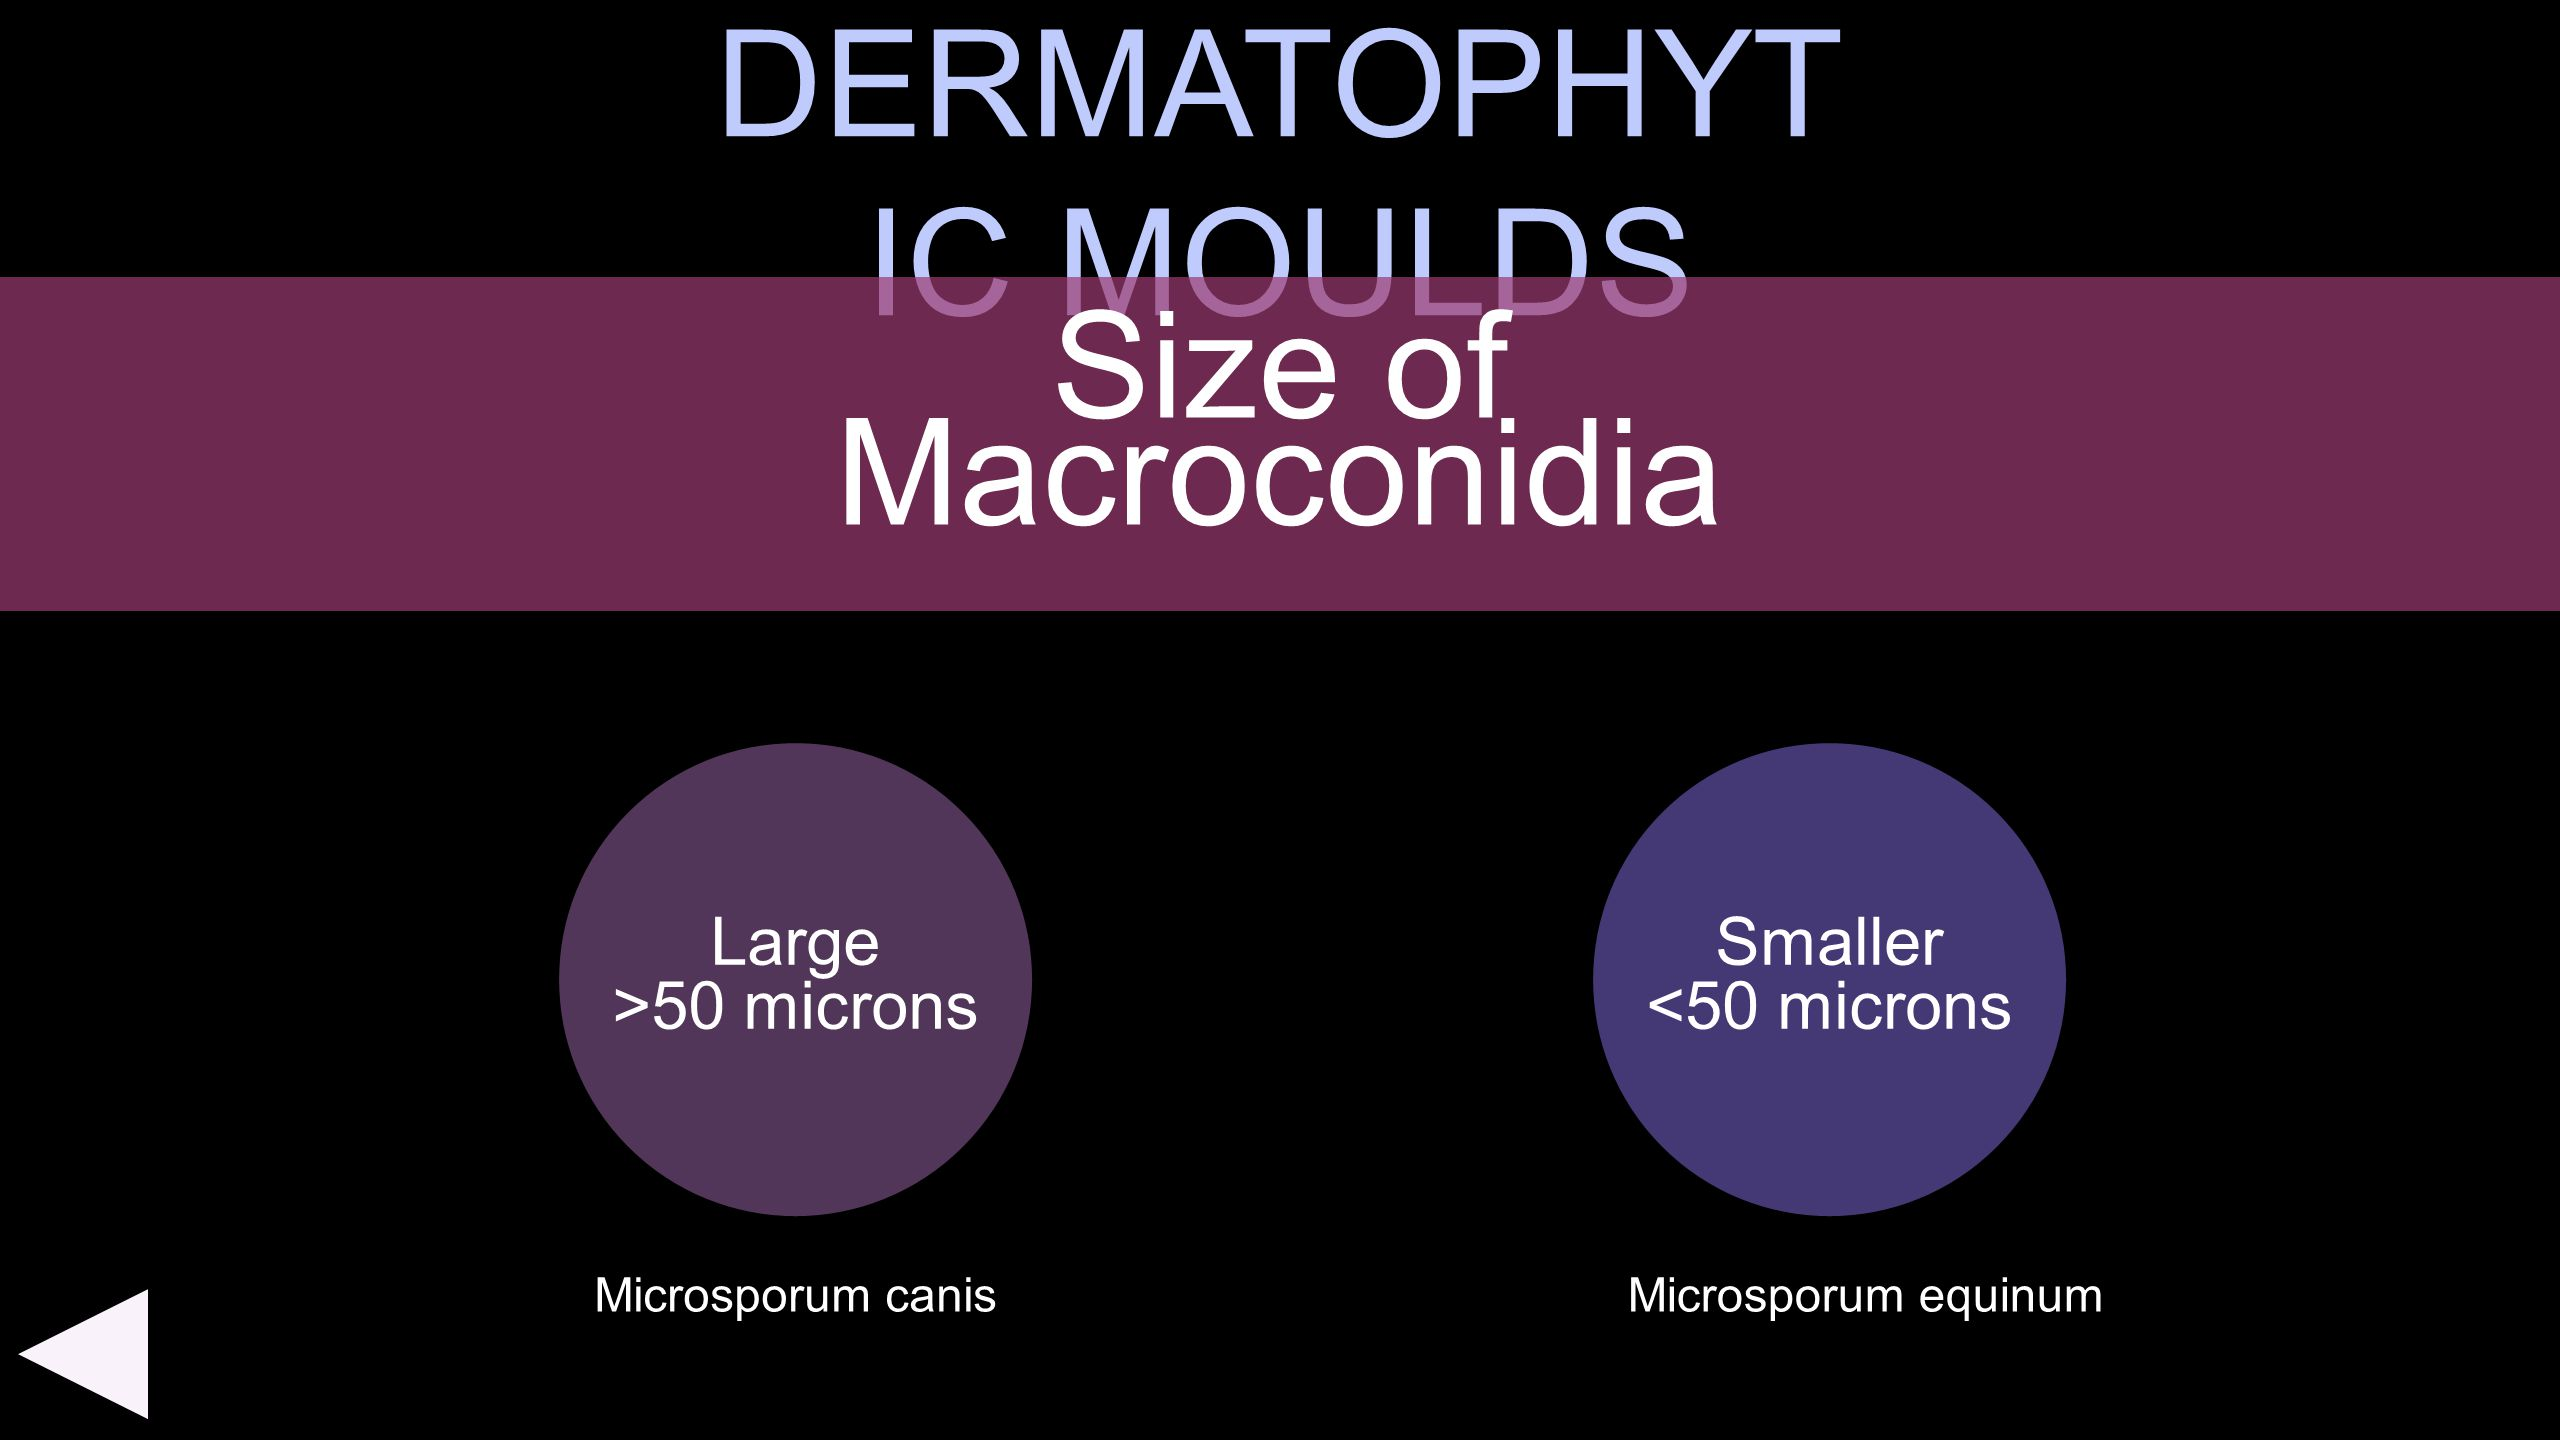 DERMATOPHYTIC MOULDS Size of Macroconidia Large >50 microns Smaller